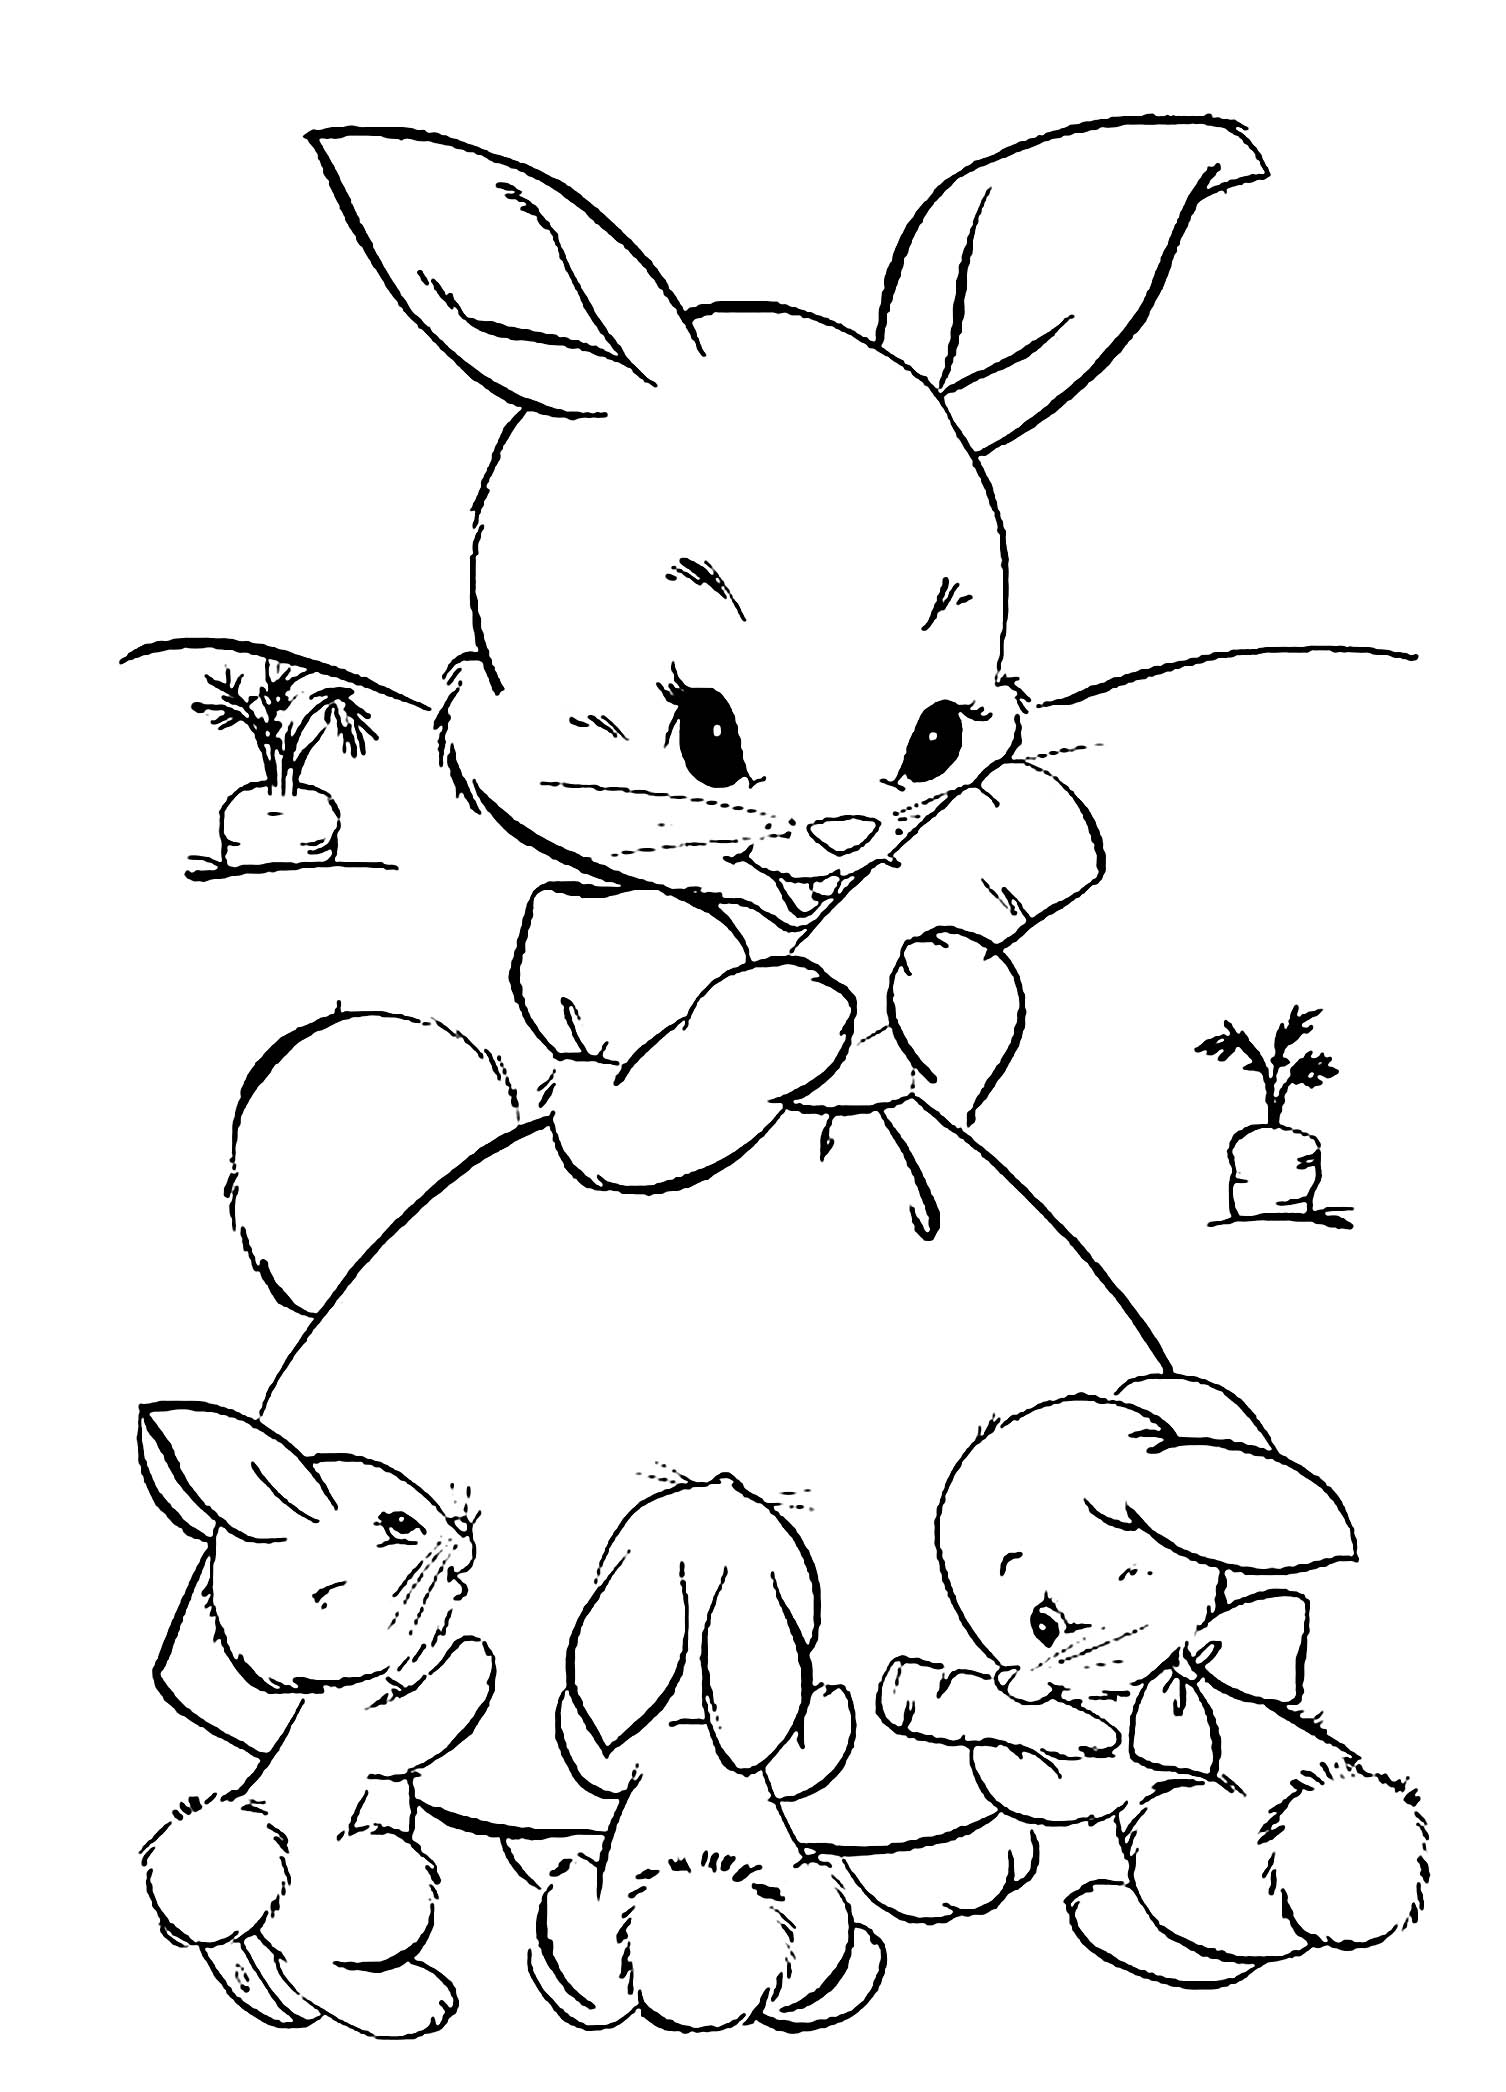 rabbit coloring image rabbit free to color for children rabbit kids coloring pages image coloring rabbit